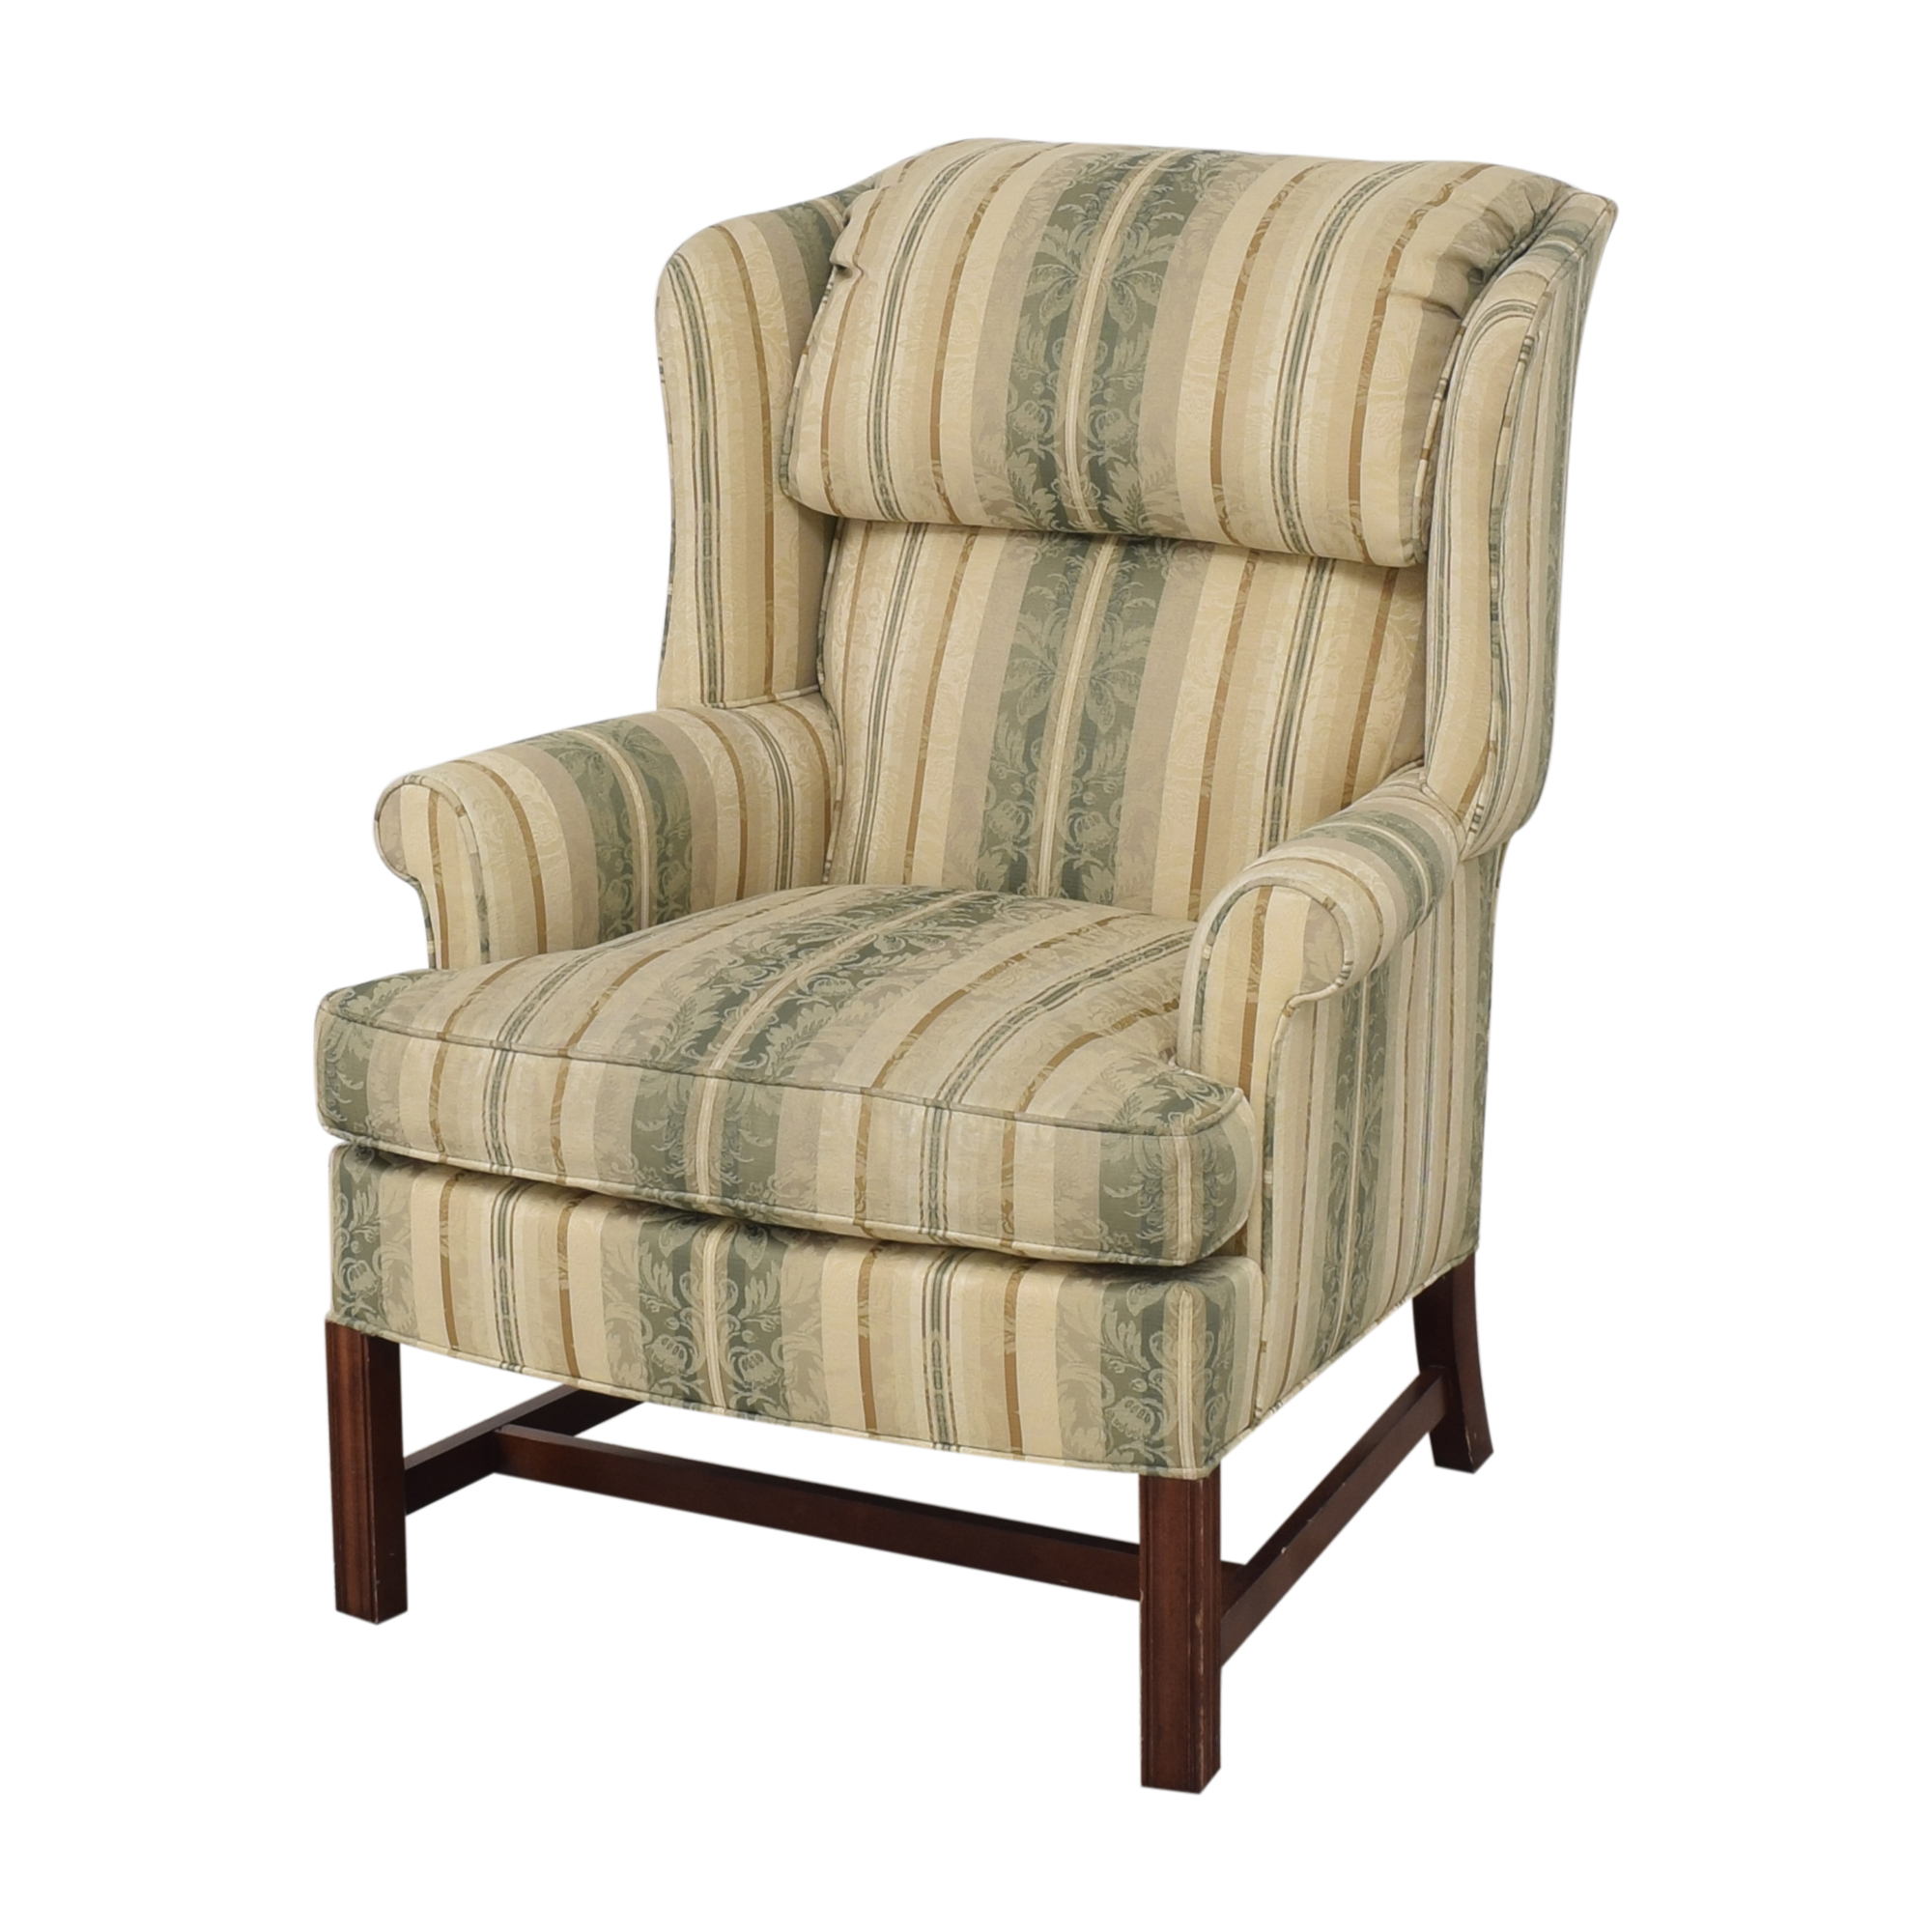 Woodmark Wing Back Accent Chair / Chairs